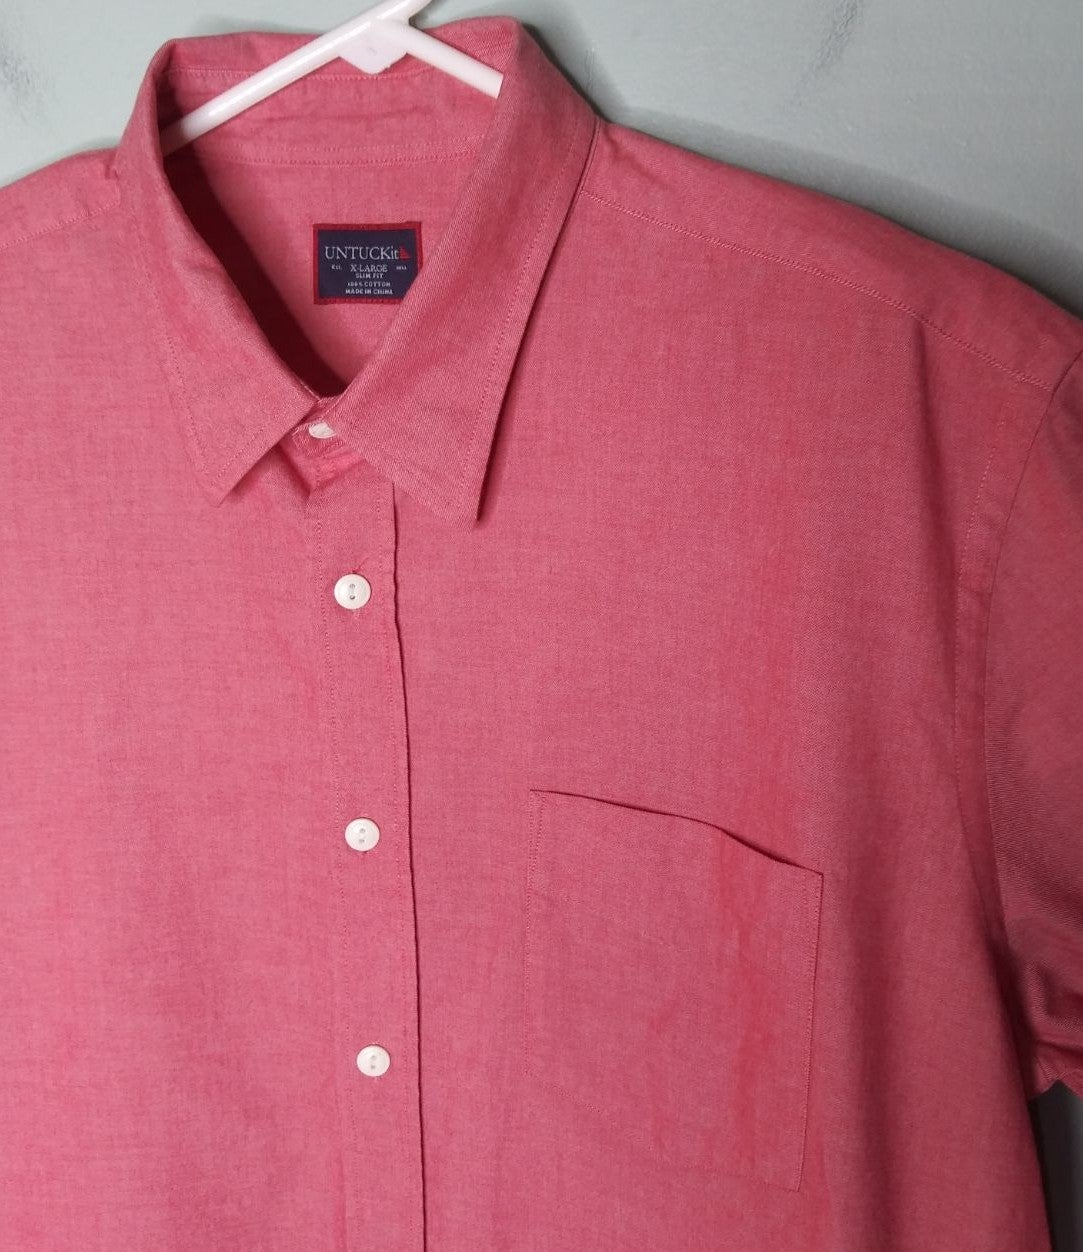 UNTUCKit Slim Fit Button Front Shirt